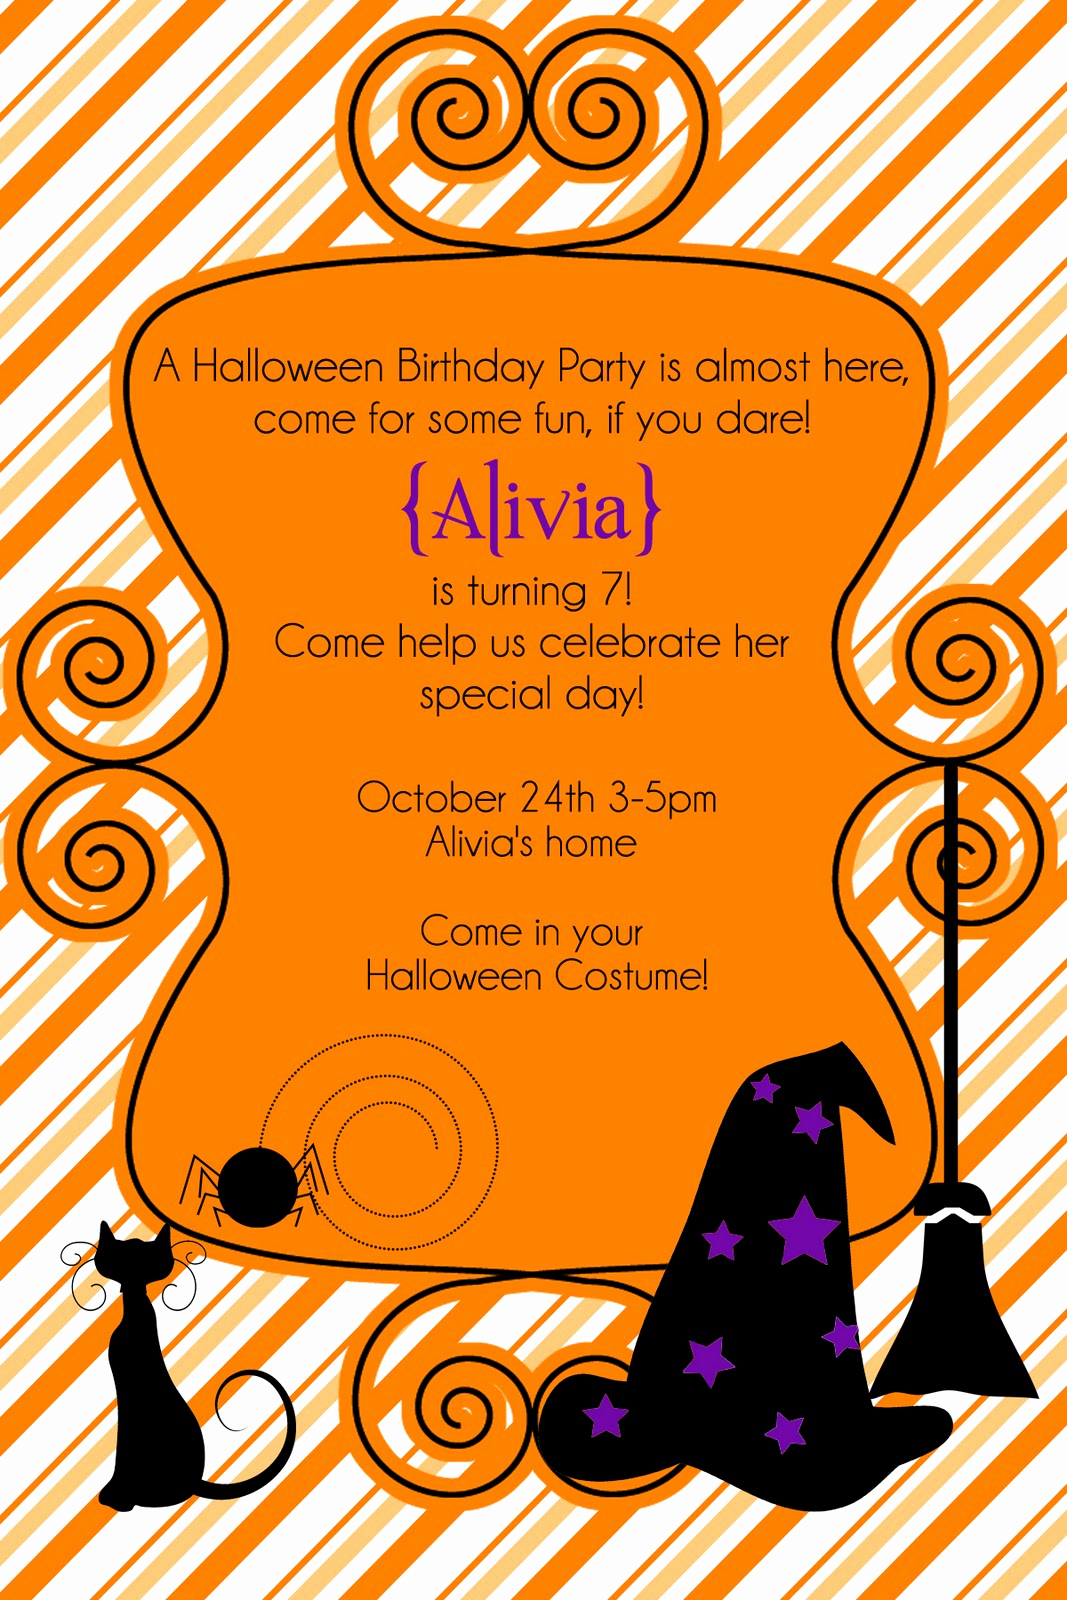 Halloween Party Invite Template Luxury Deal Seeking Graphers Featured Vendor Glorious